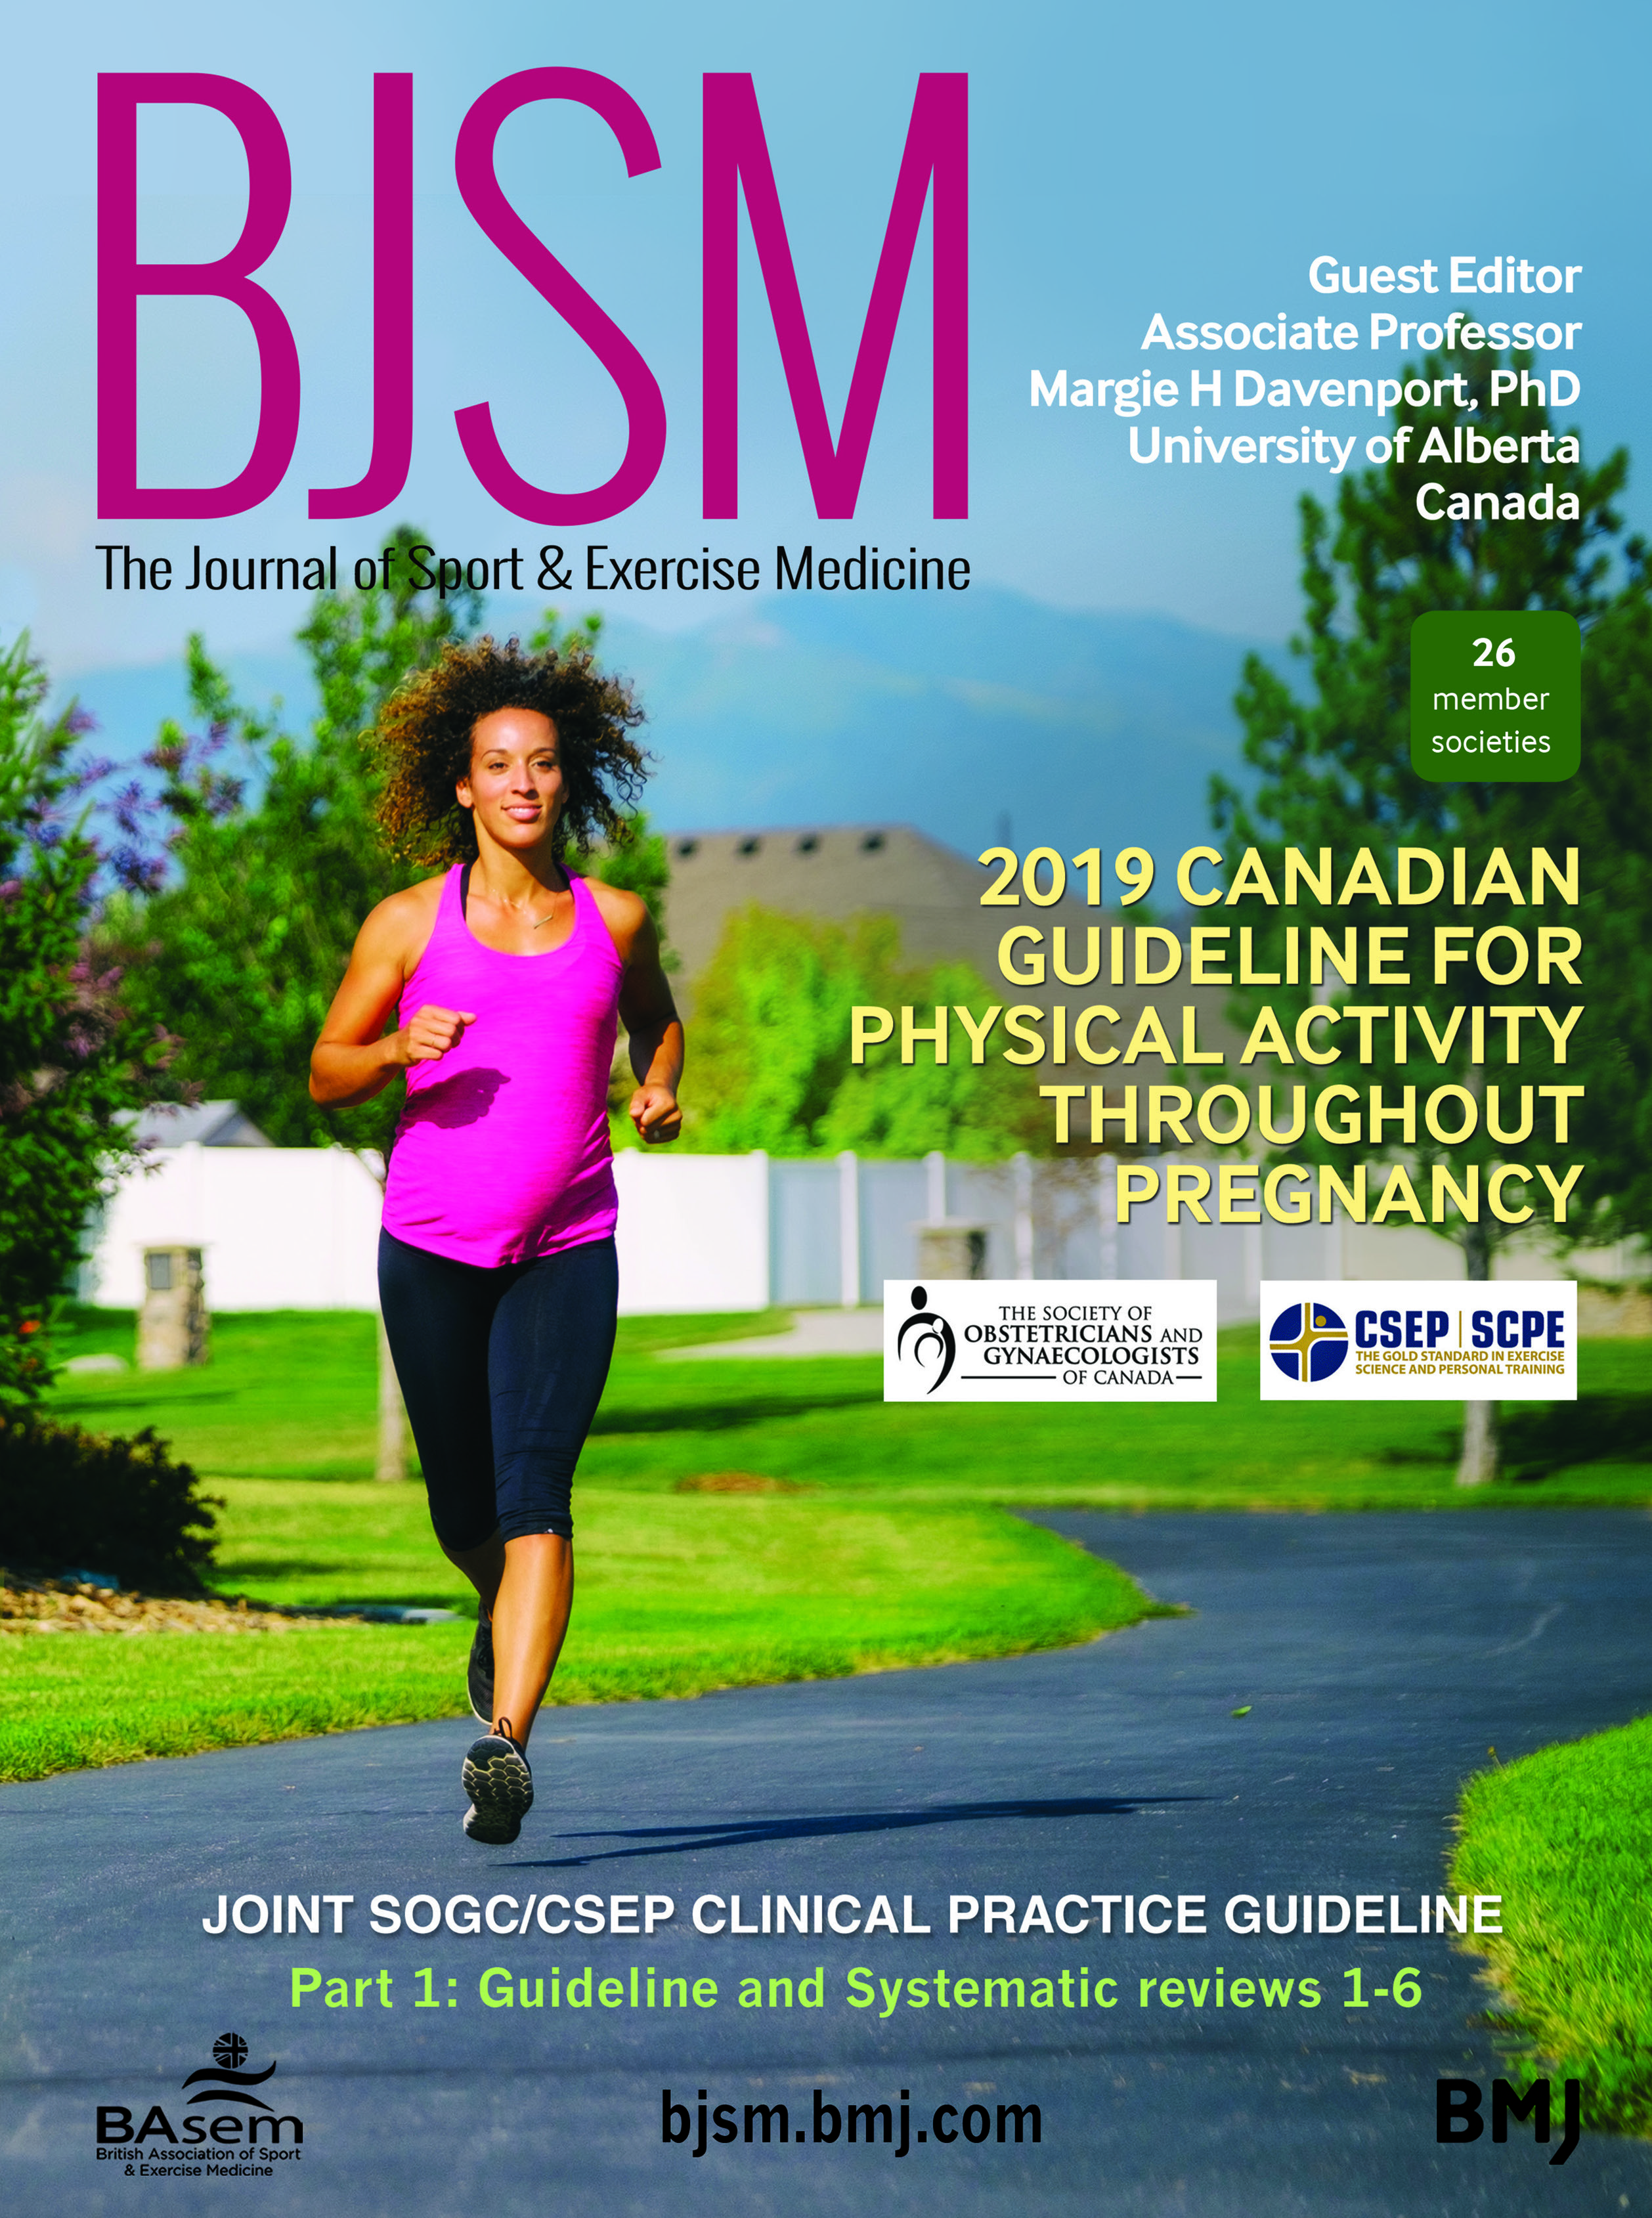 2019 Canadian guideline for physical activity throughout